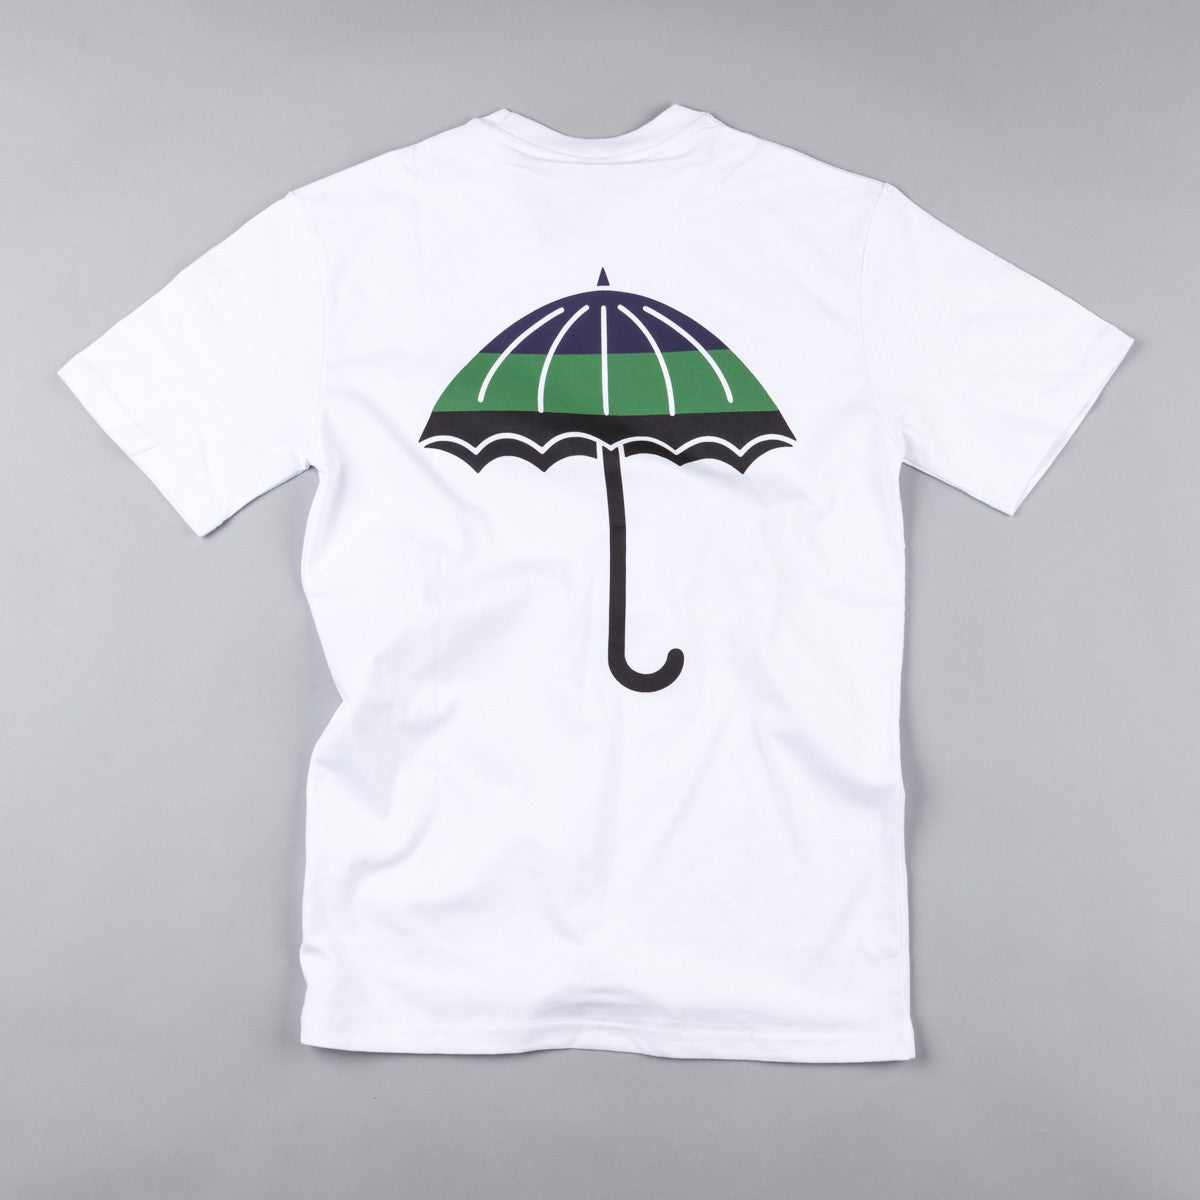 Helas Umbrella Bando T-Shirt - White / Navy / Green / Black